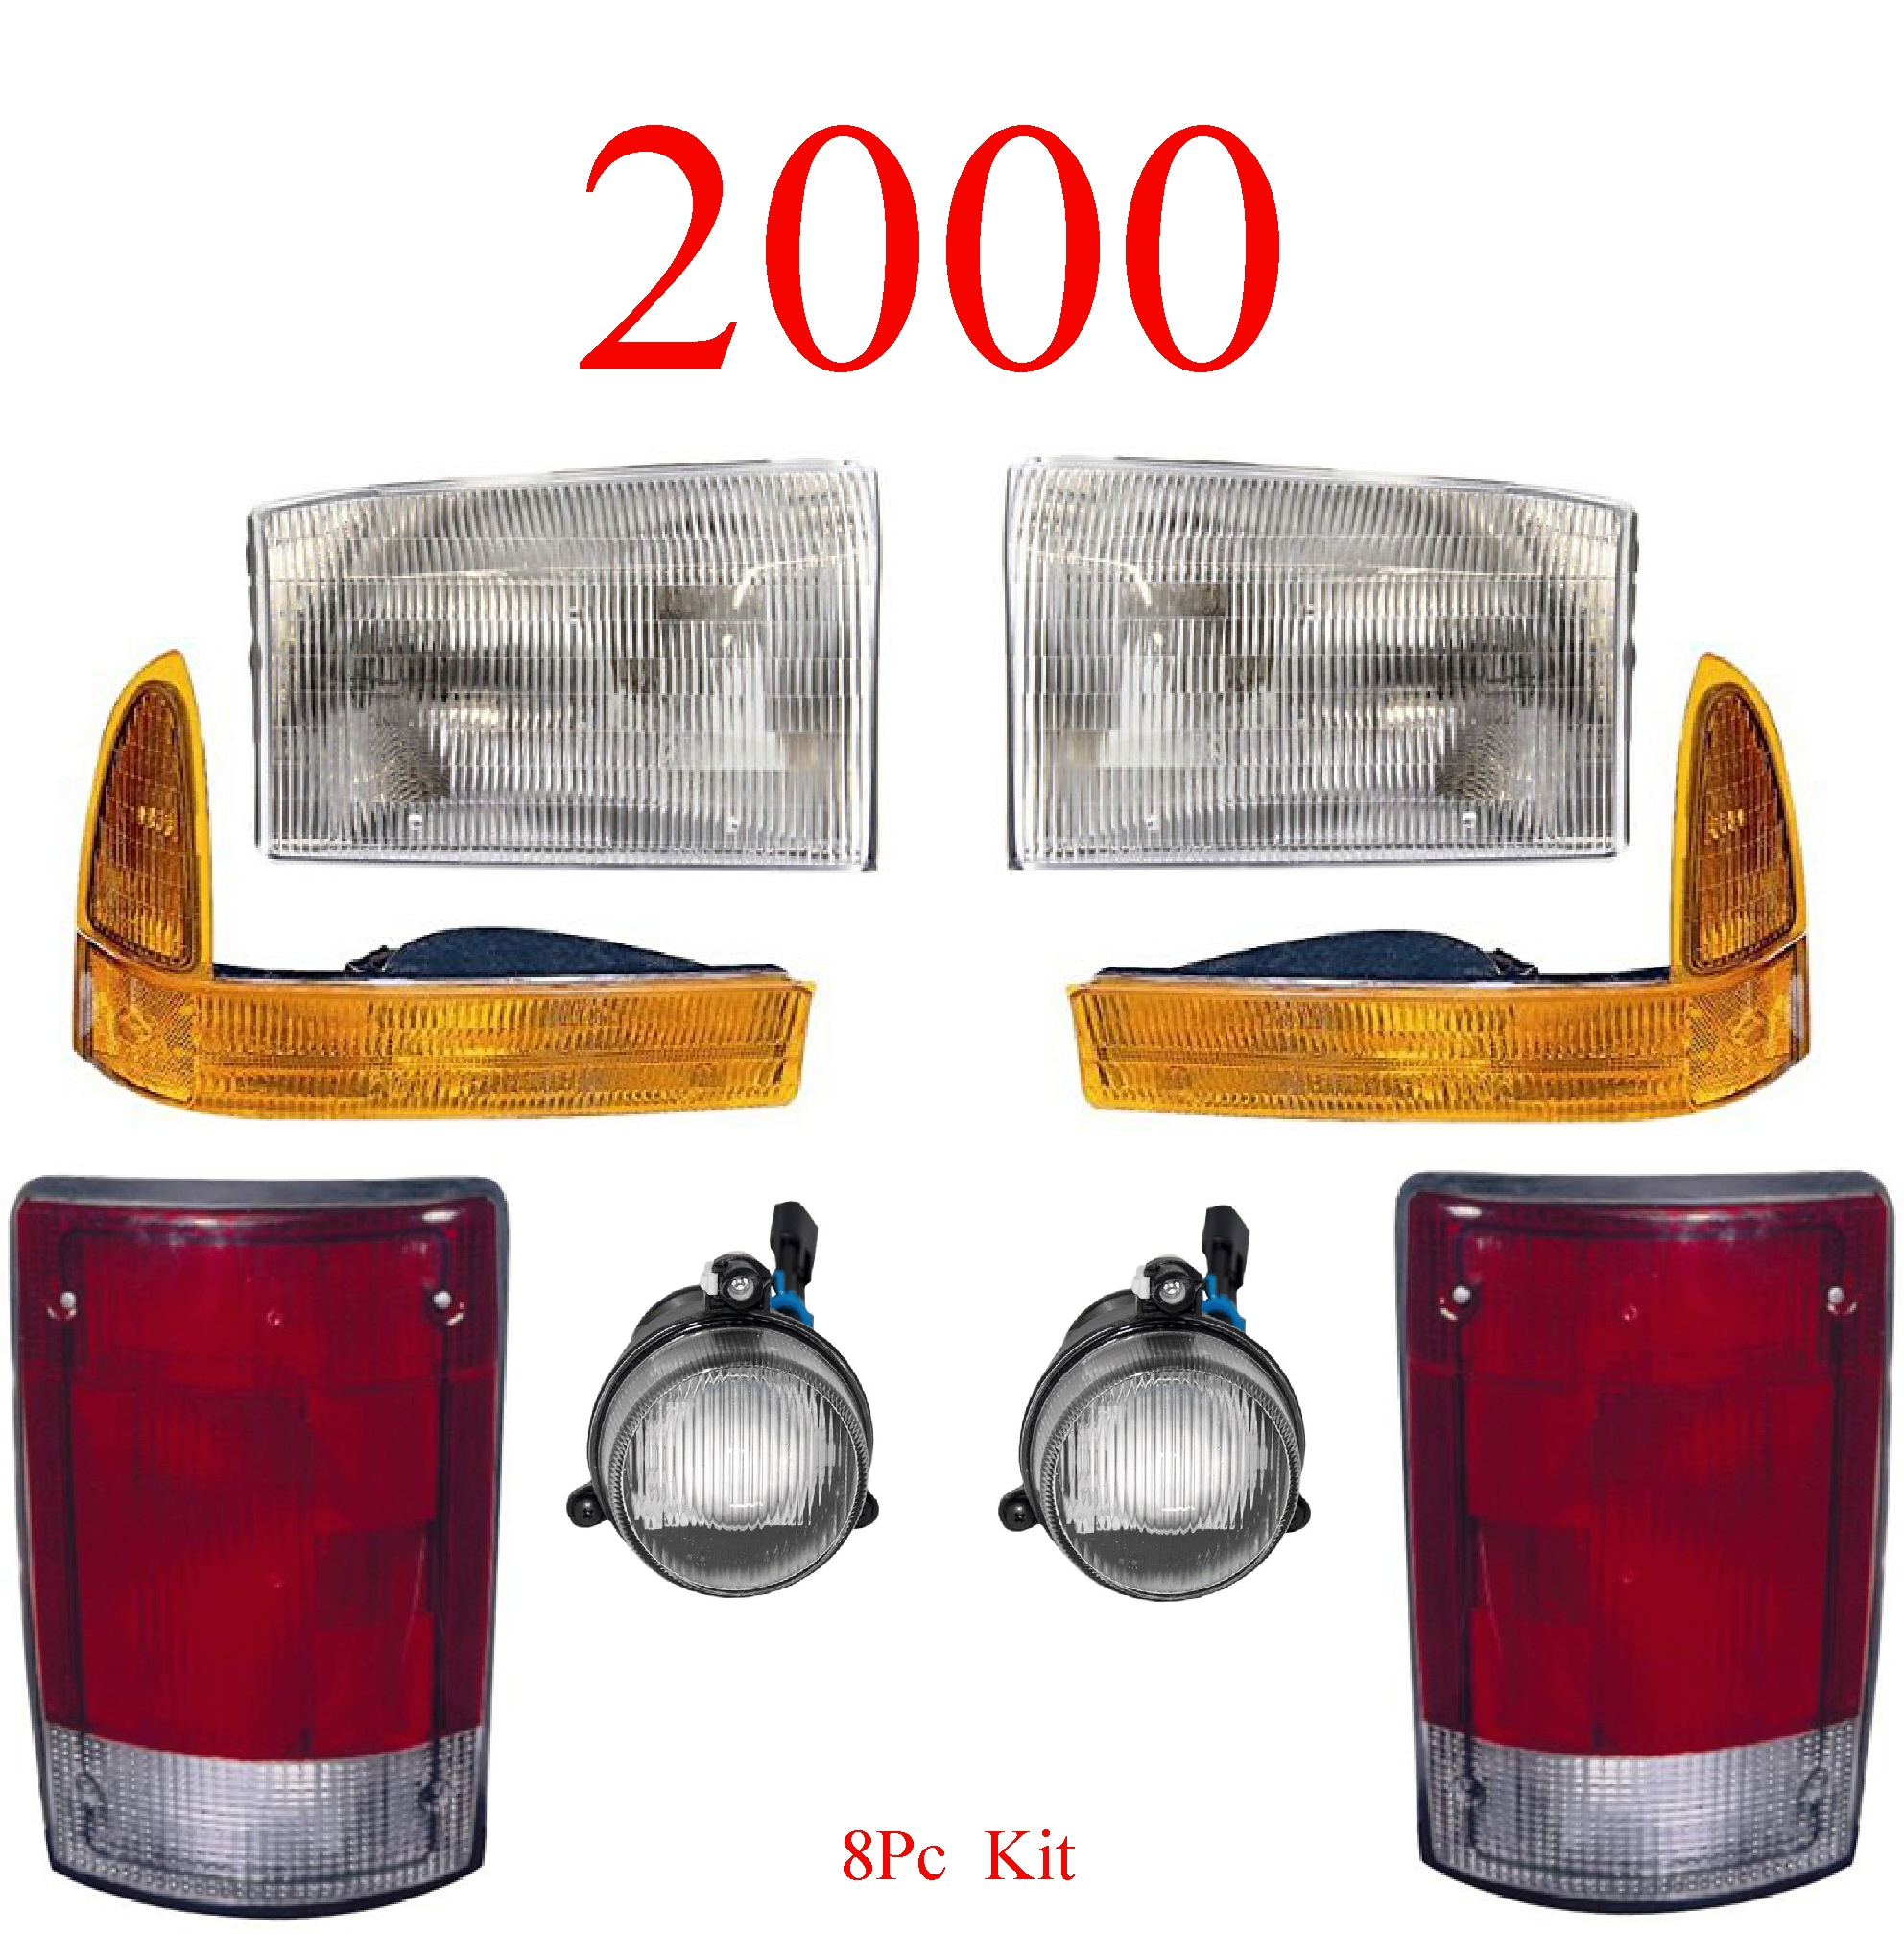 00 Ford Excursion 8Pc Head, Park, Fog & Tail Light Kit